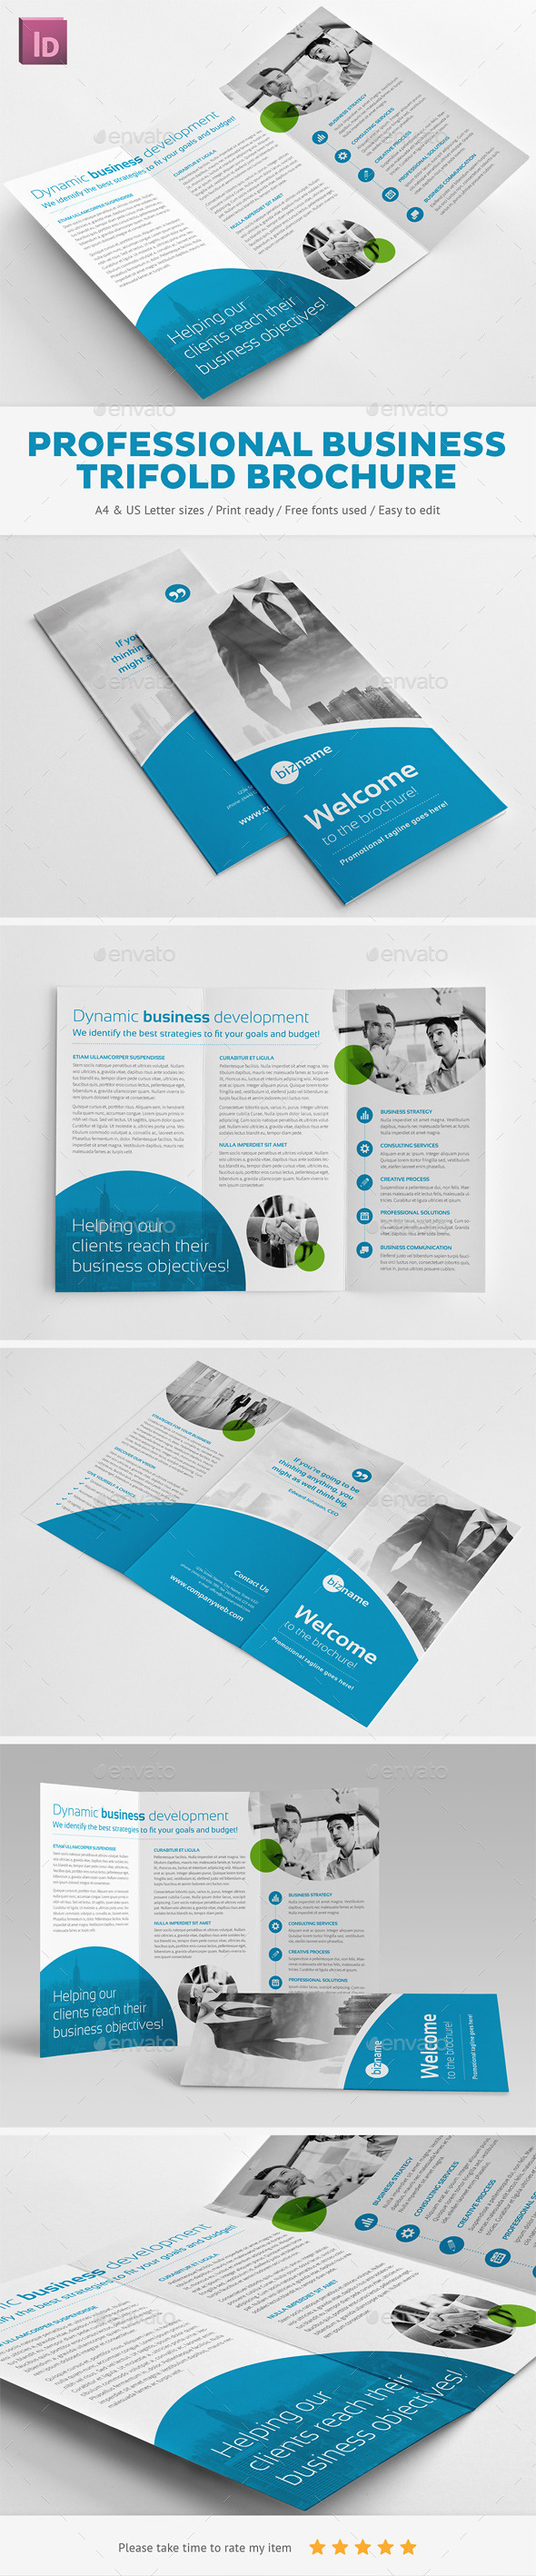 GraphicRiver Professional Business Trifold Brochure 11558562